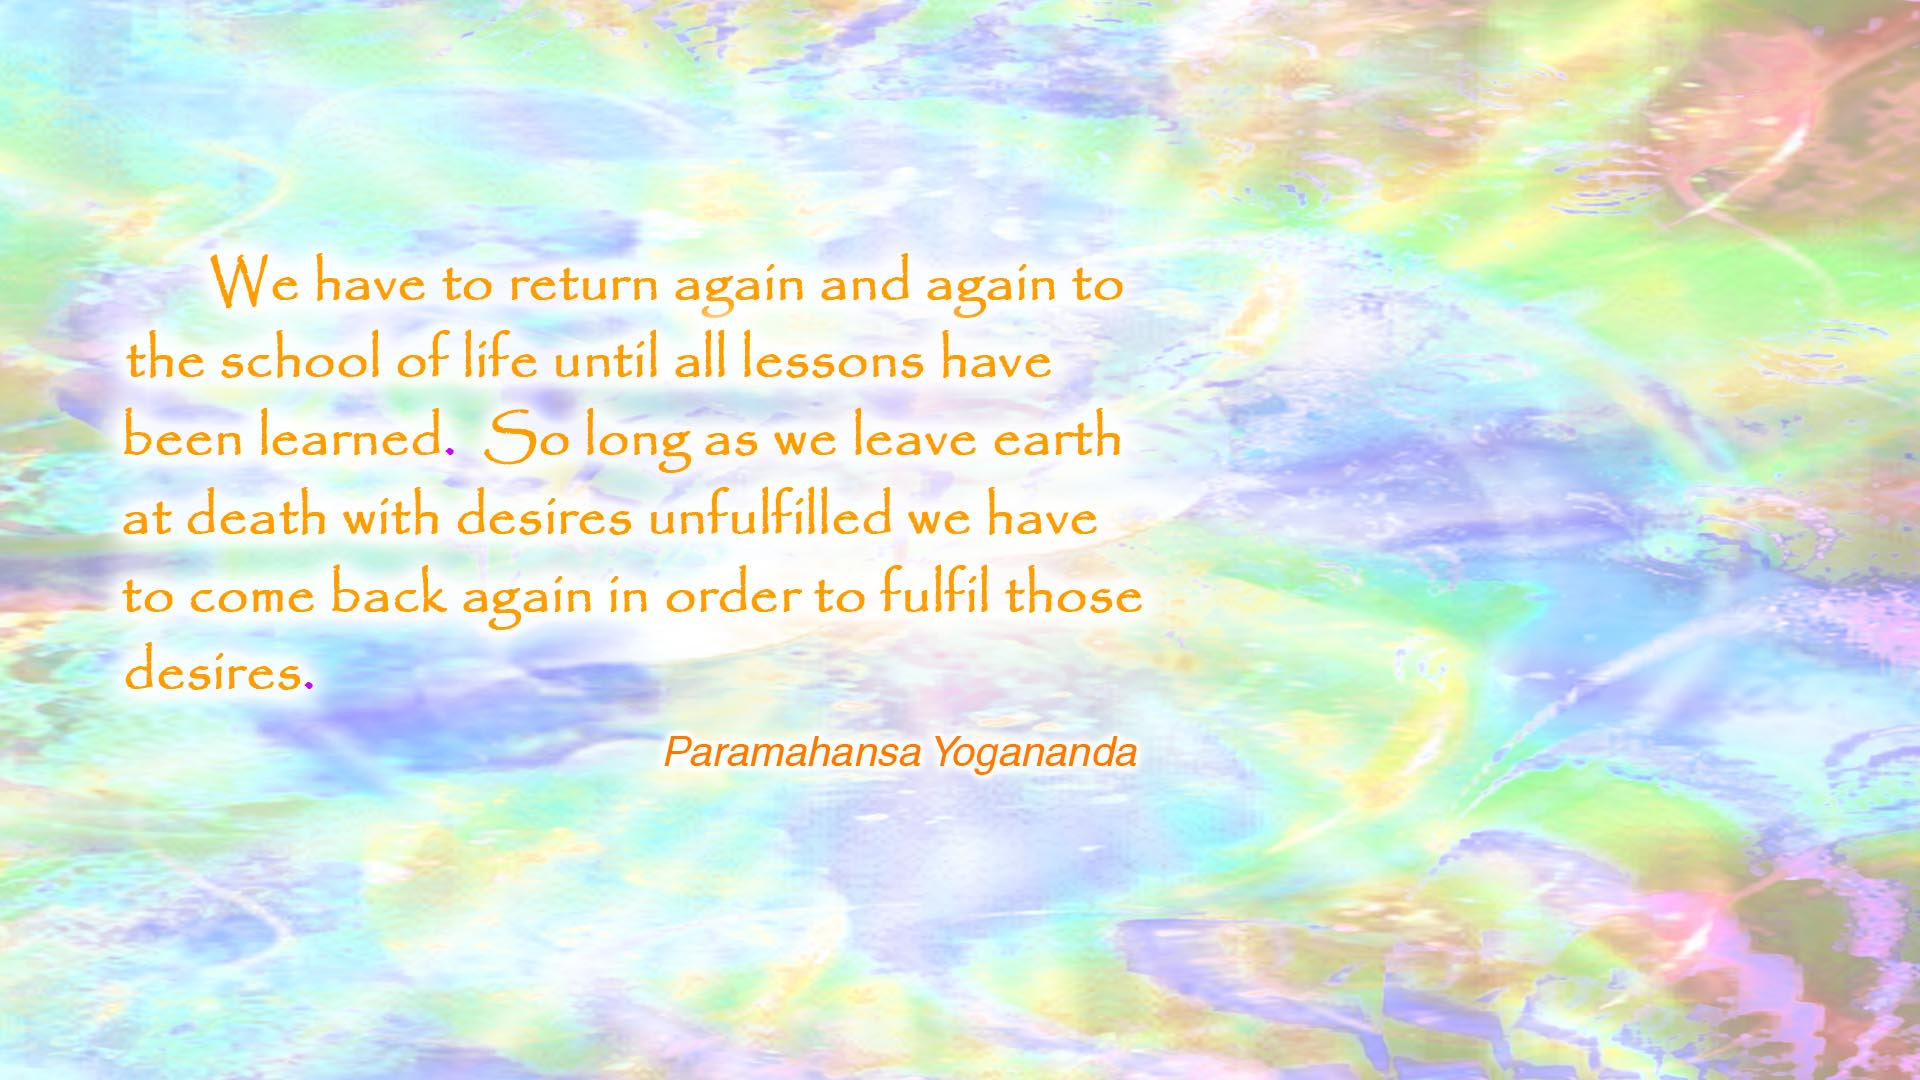 Yogananda school of life wallpaper